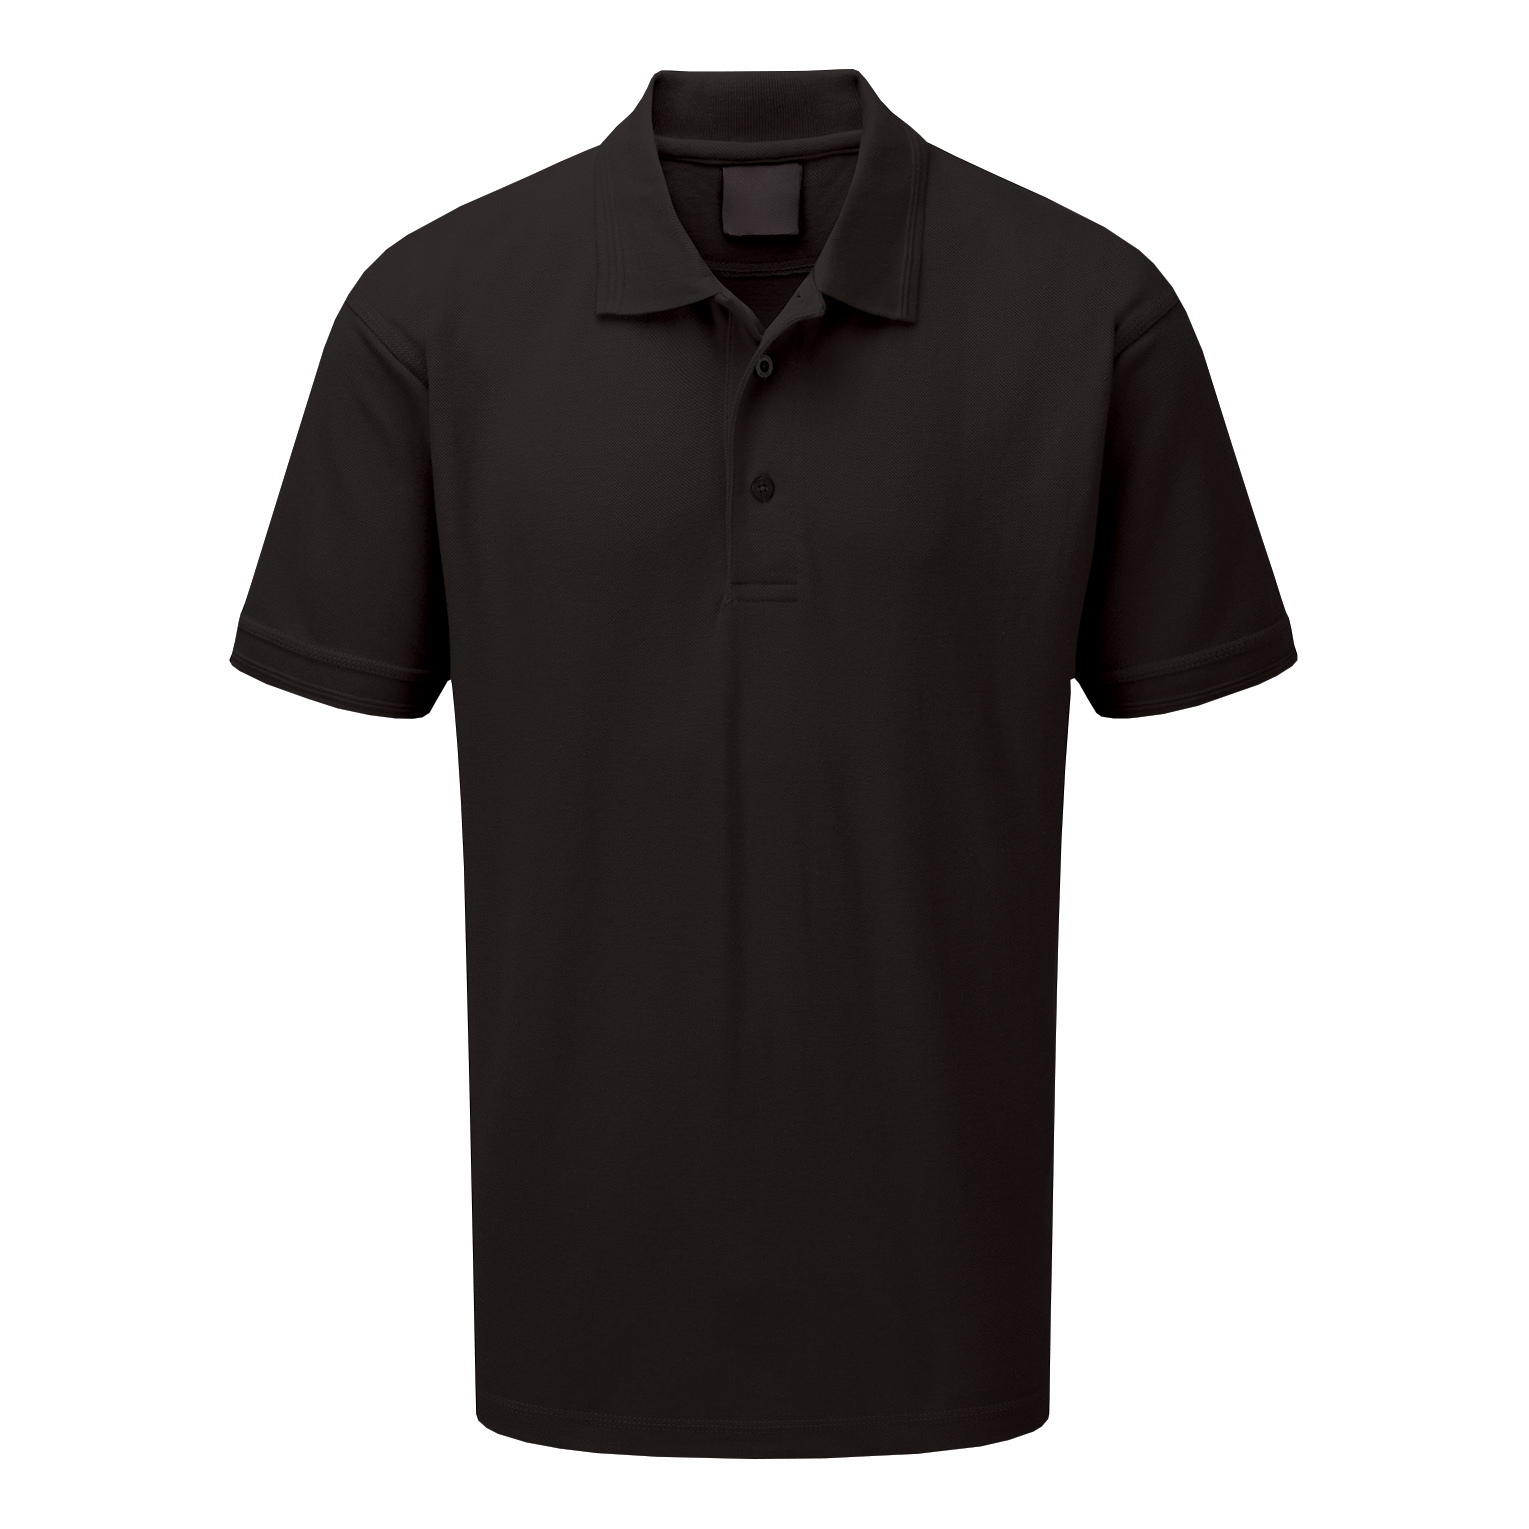 Supertouch Polo Shirt Classic Polycotton Extra Large Black Ref 56CA4 *Approx 3 Day Leadtime*